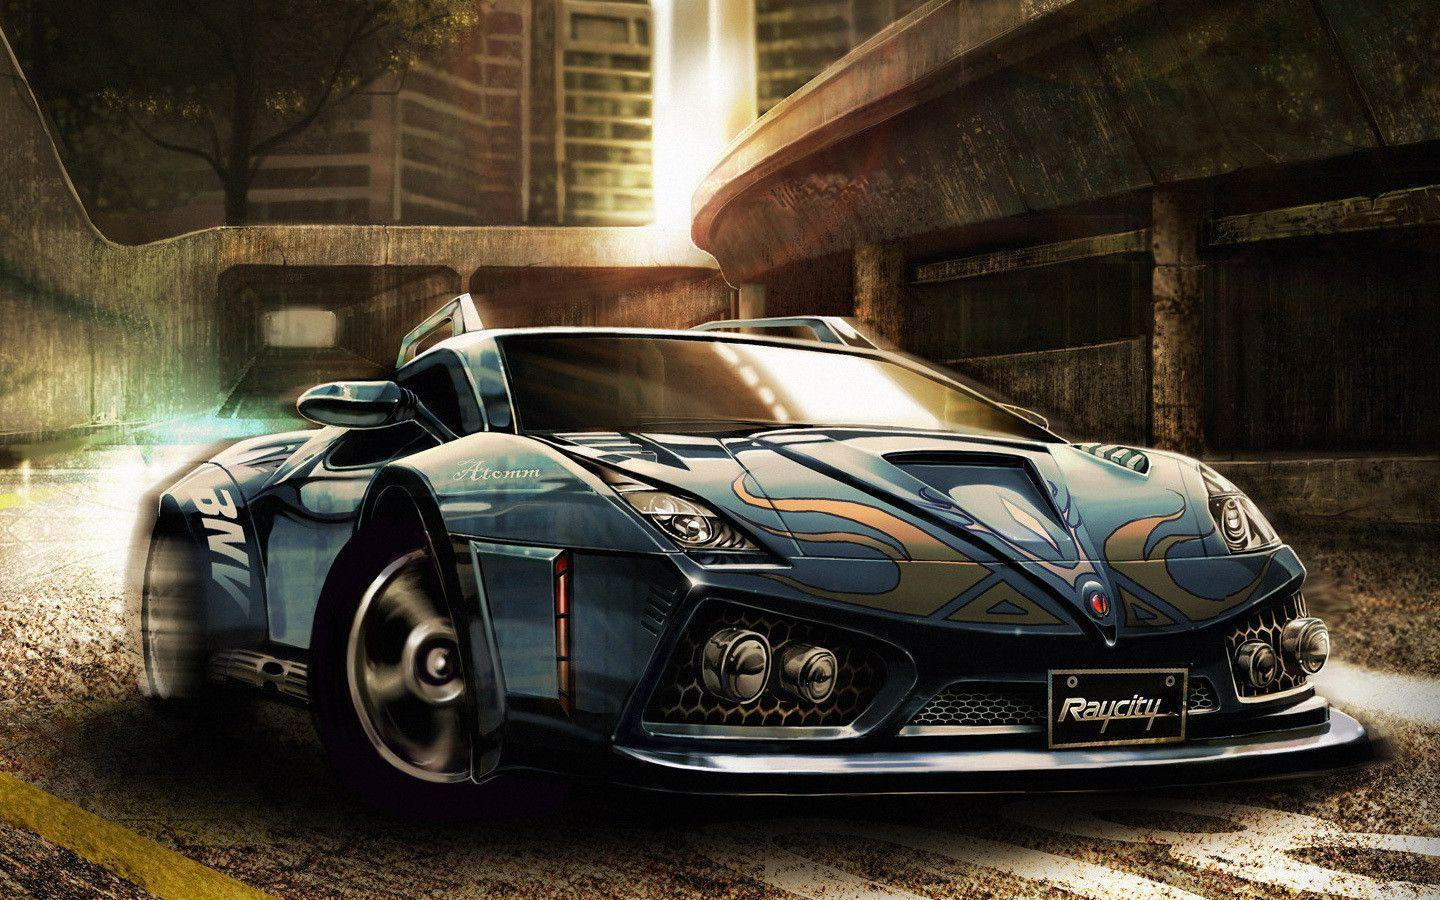 cool car wallpaper hd - photo #1